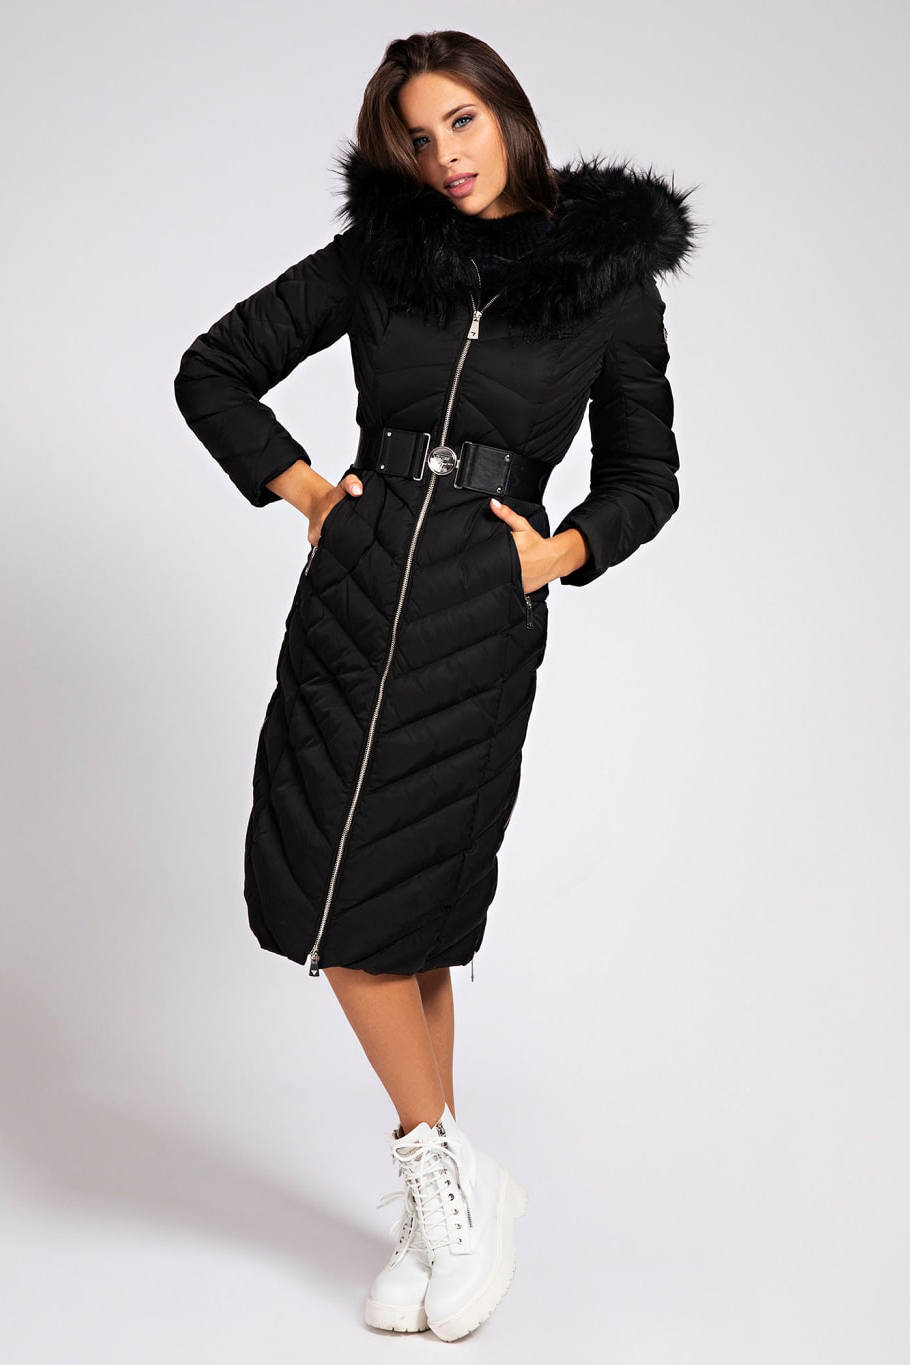 Guess Black Coats Belted Padded Long, Black Coat With Fur Hood Children S